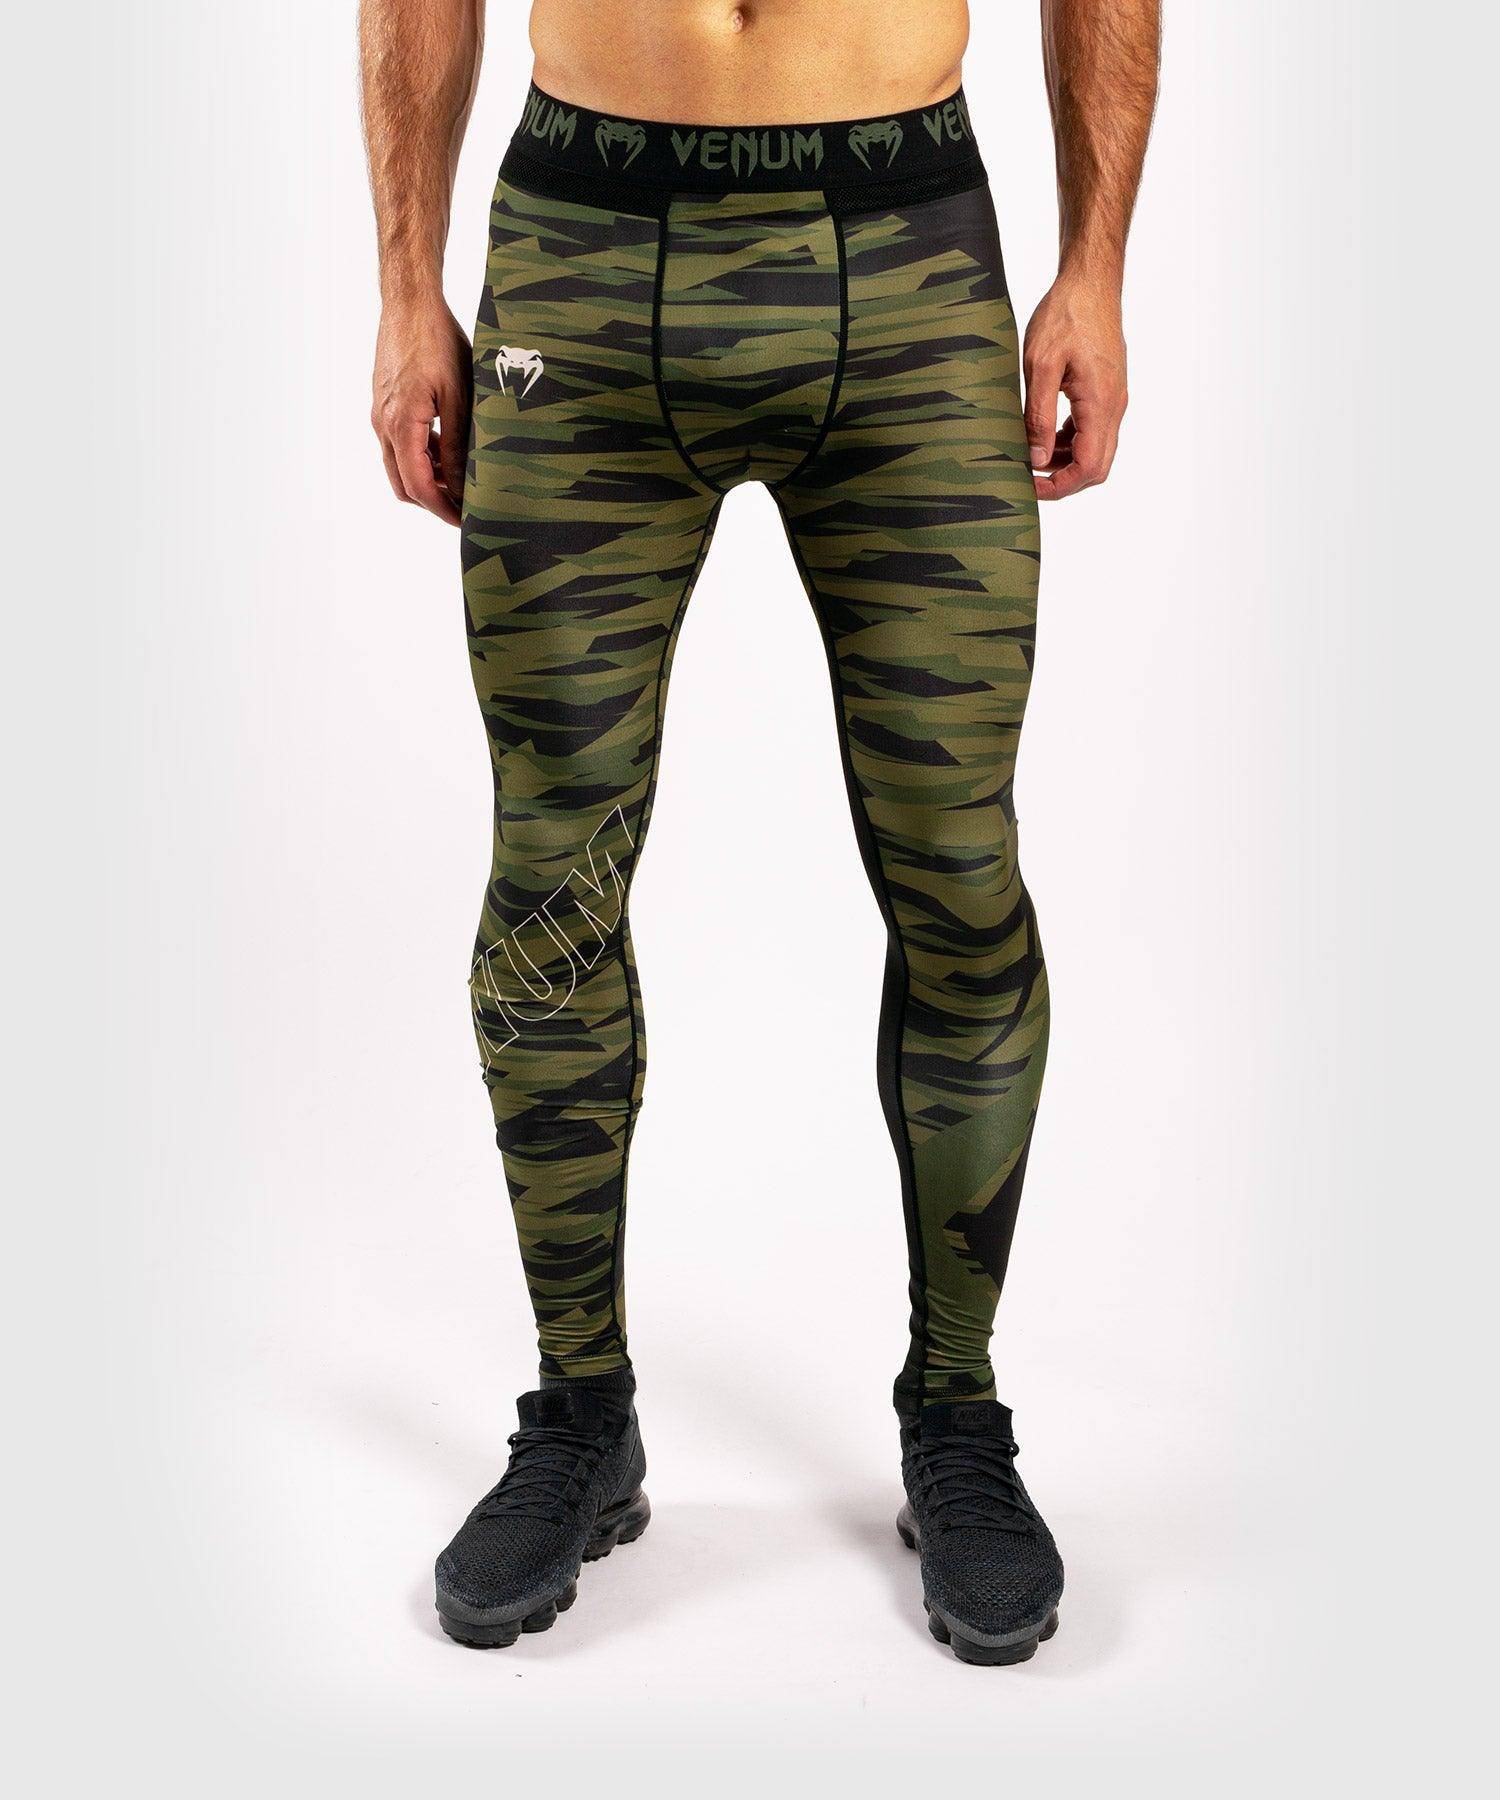 Venum Contender 5.0 Tights - Khaki camo picture 1